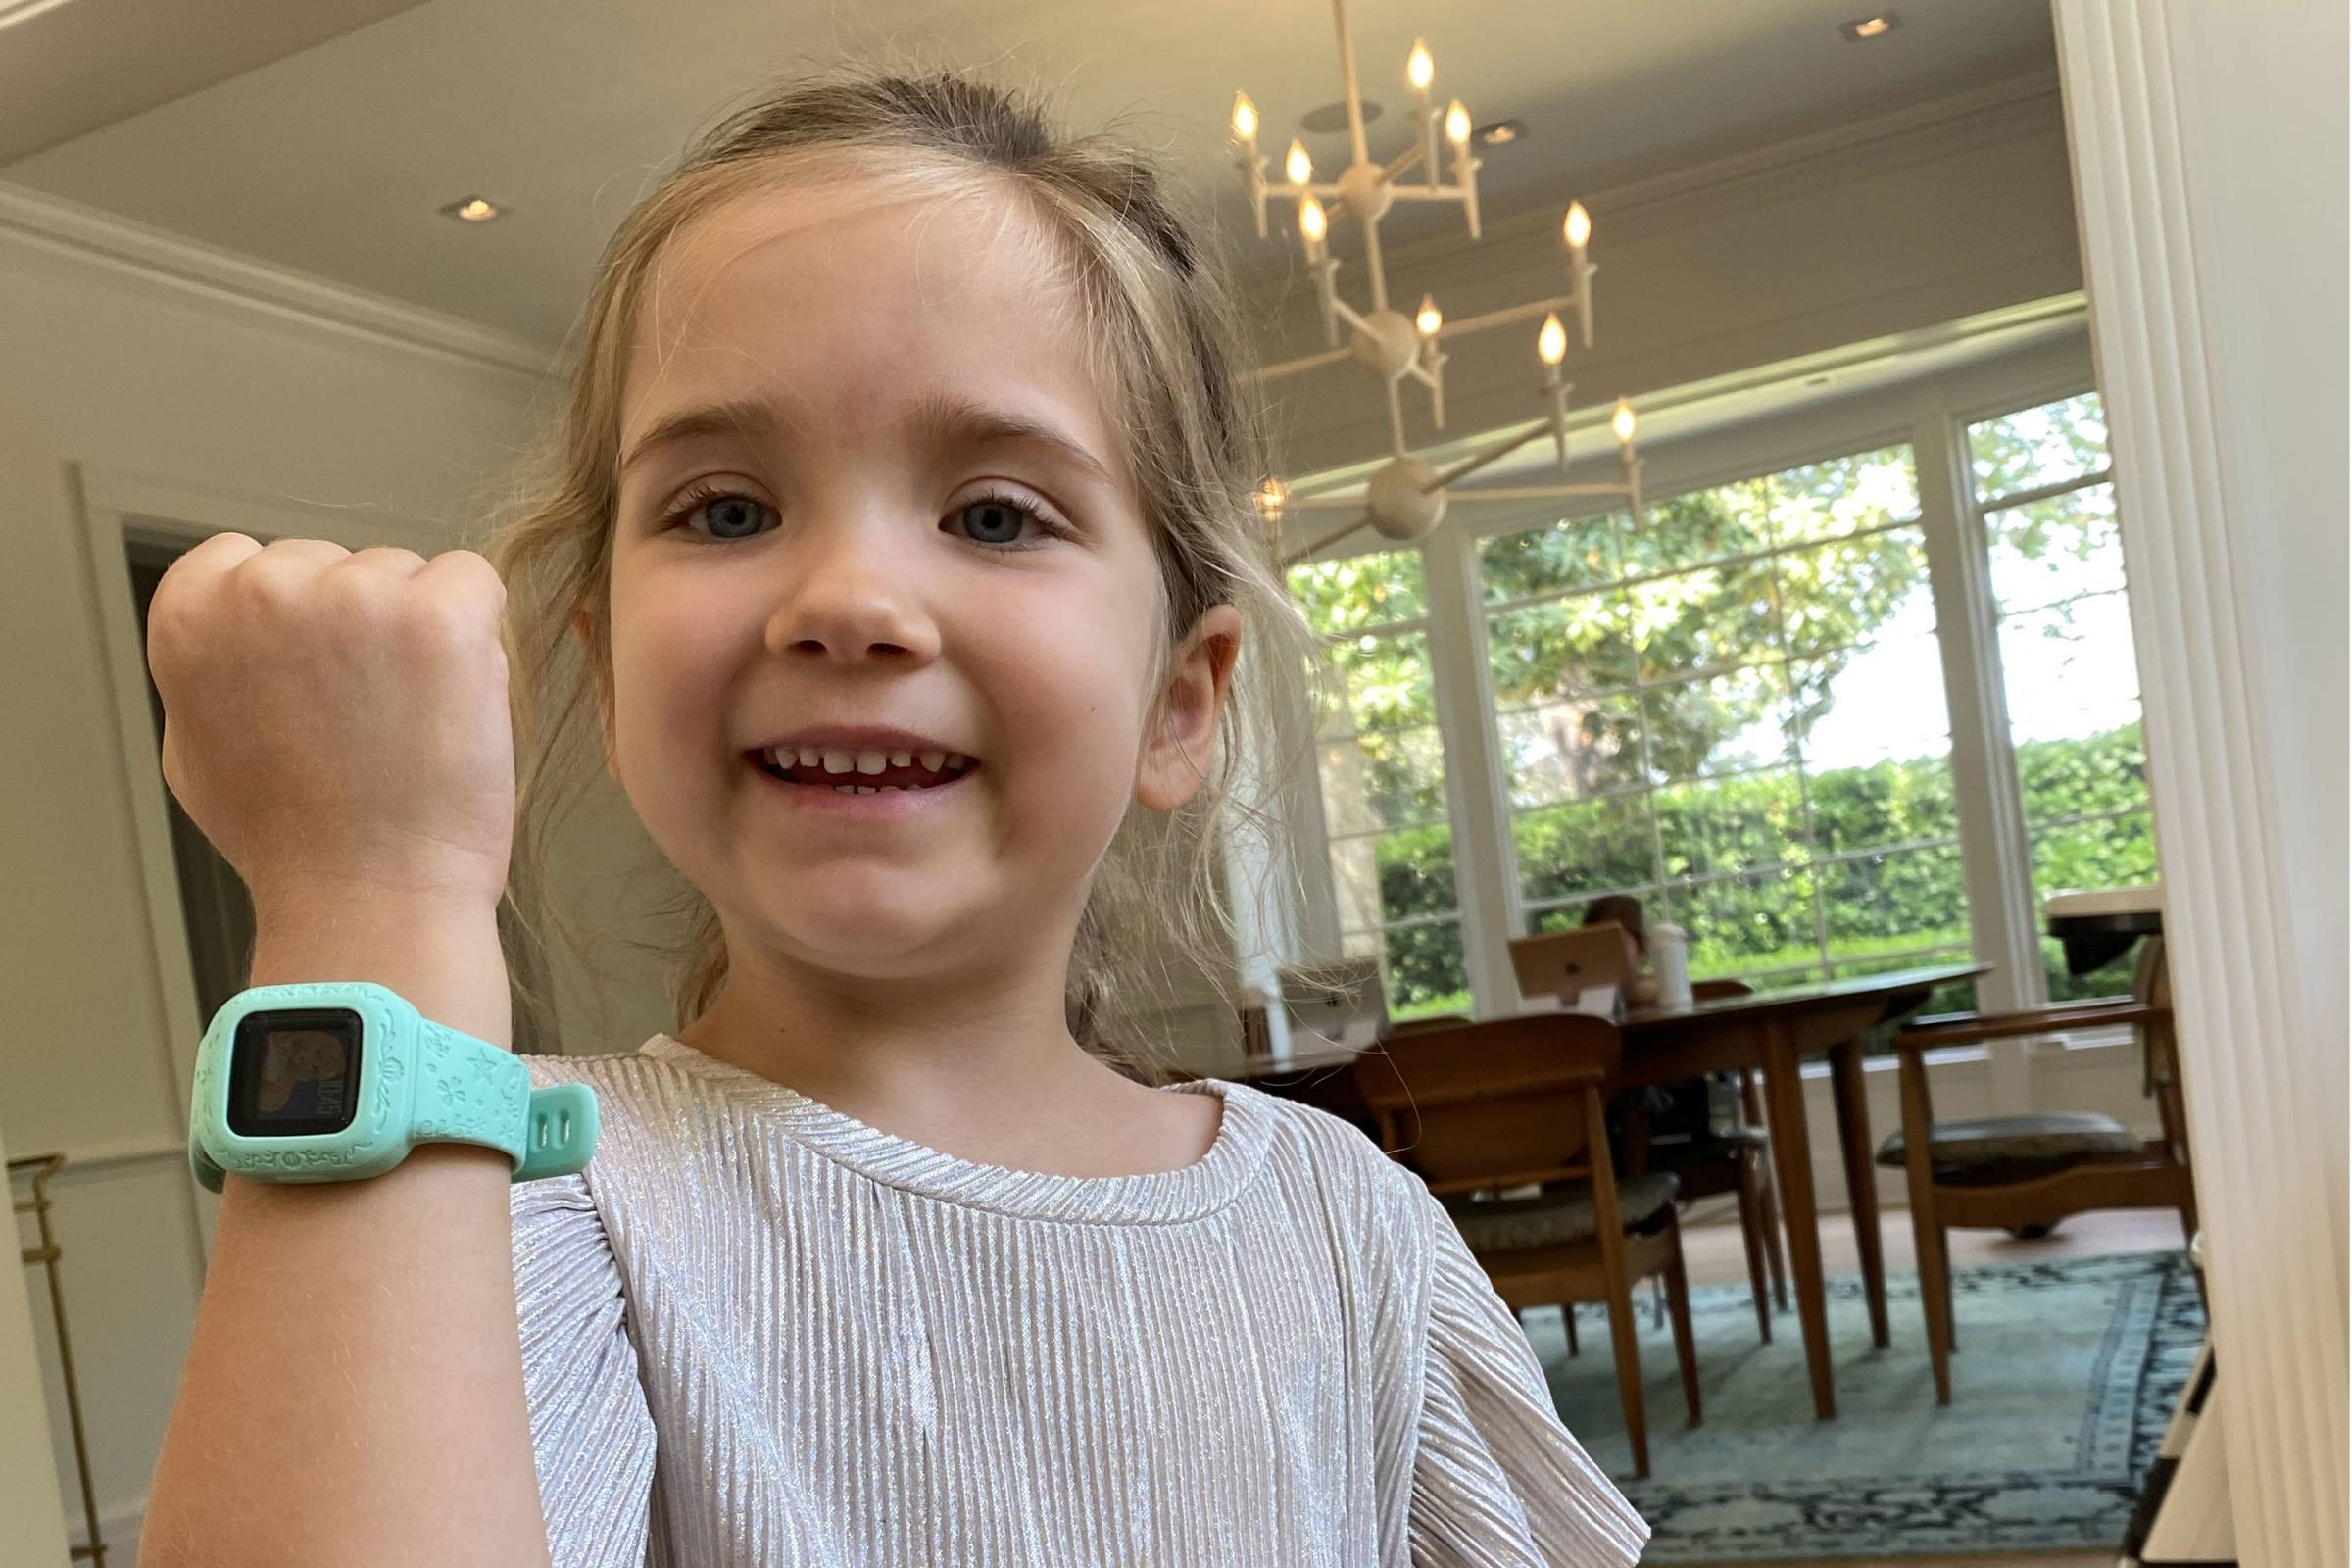 young girl showing off kids fitness trackers